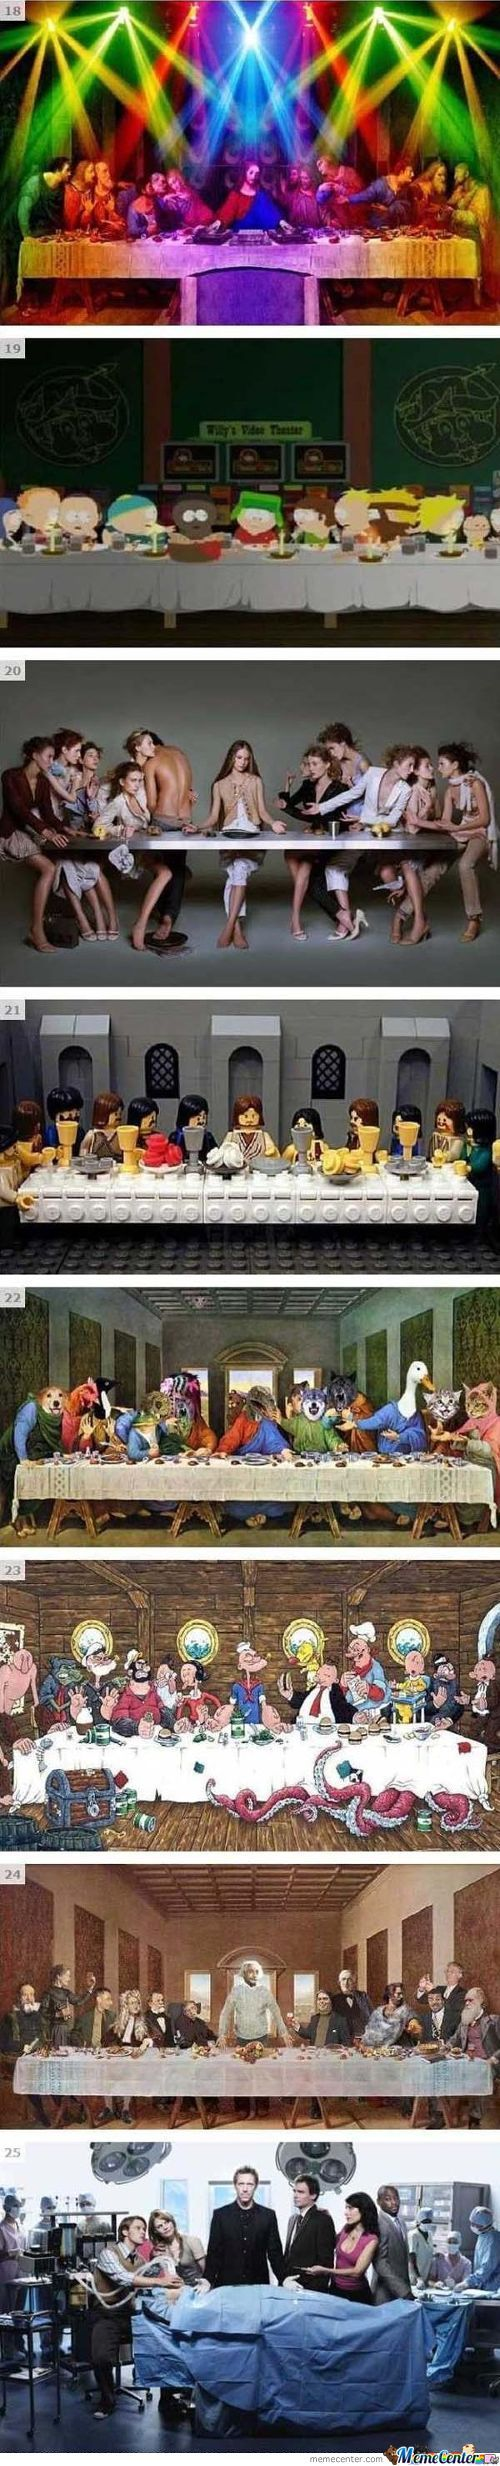 The Last Supper Parody(Continuation)